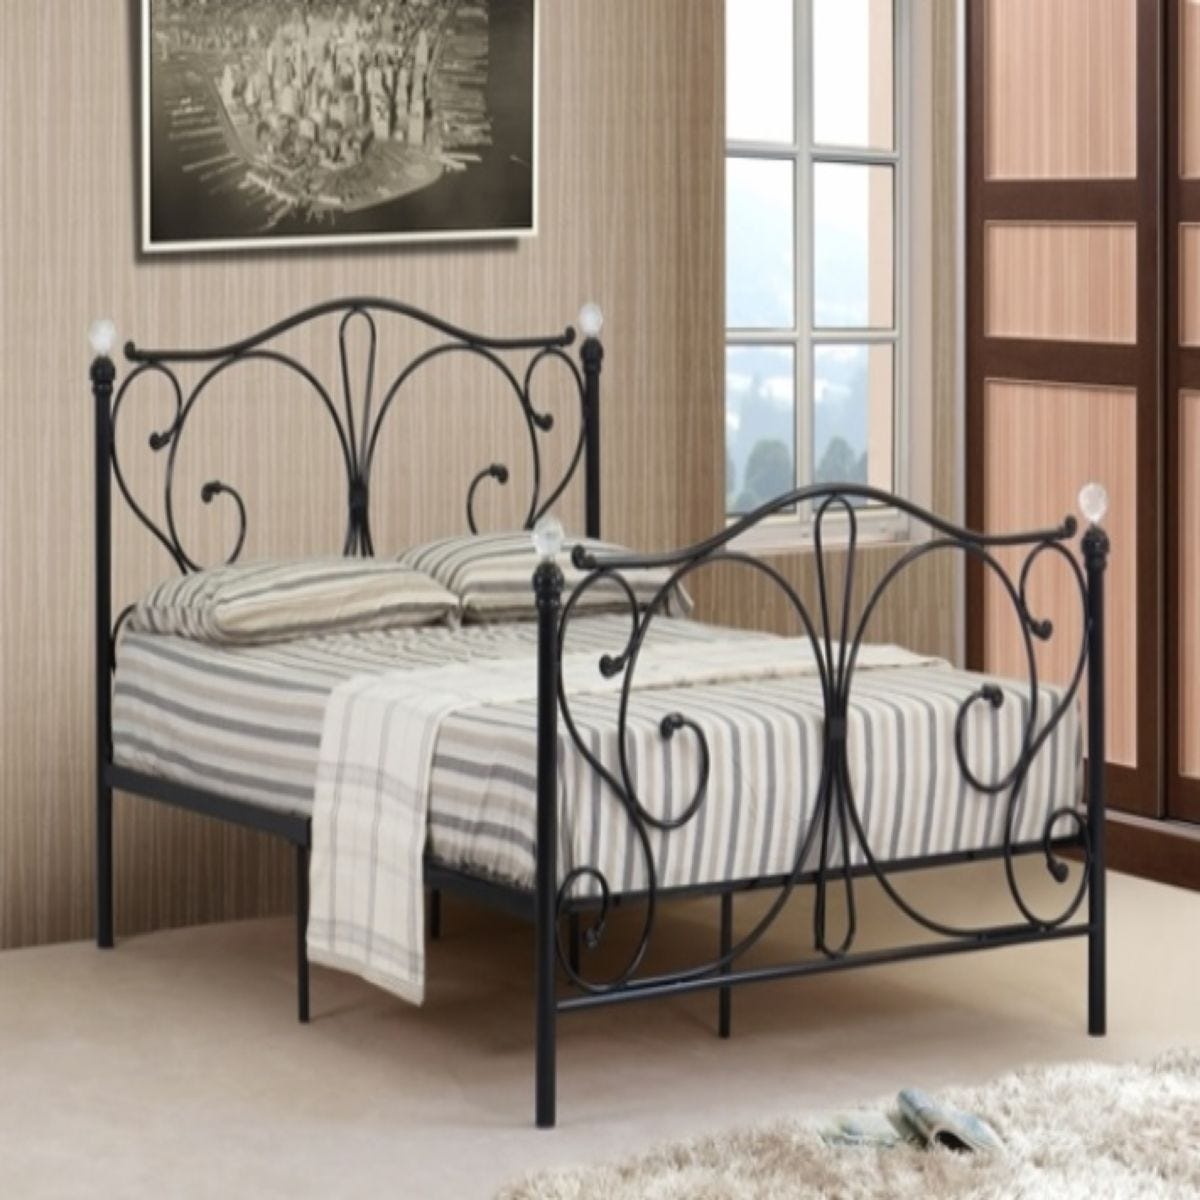 Isabelle Metal Bed Frame With Crystal Finials - Black